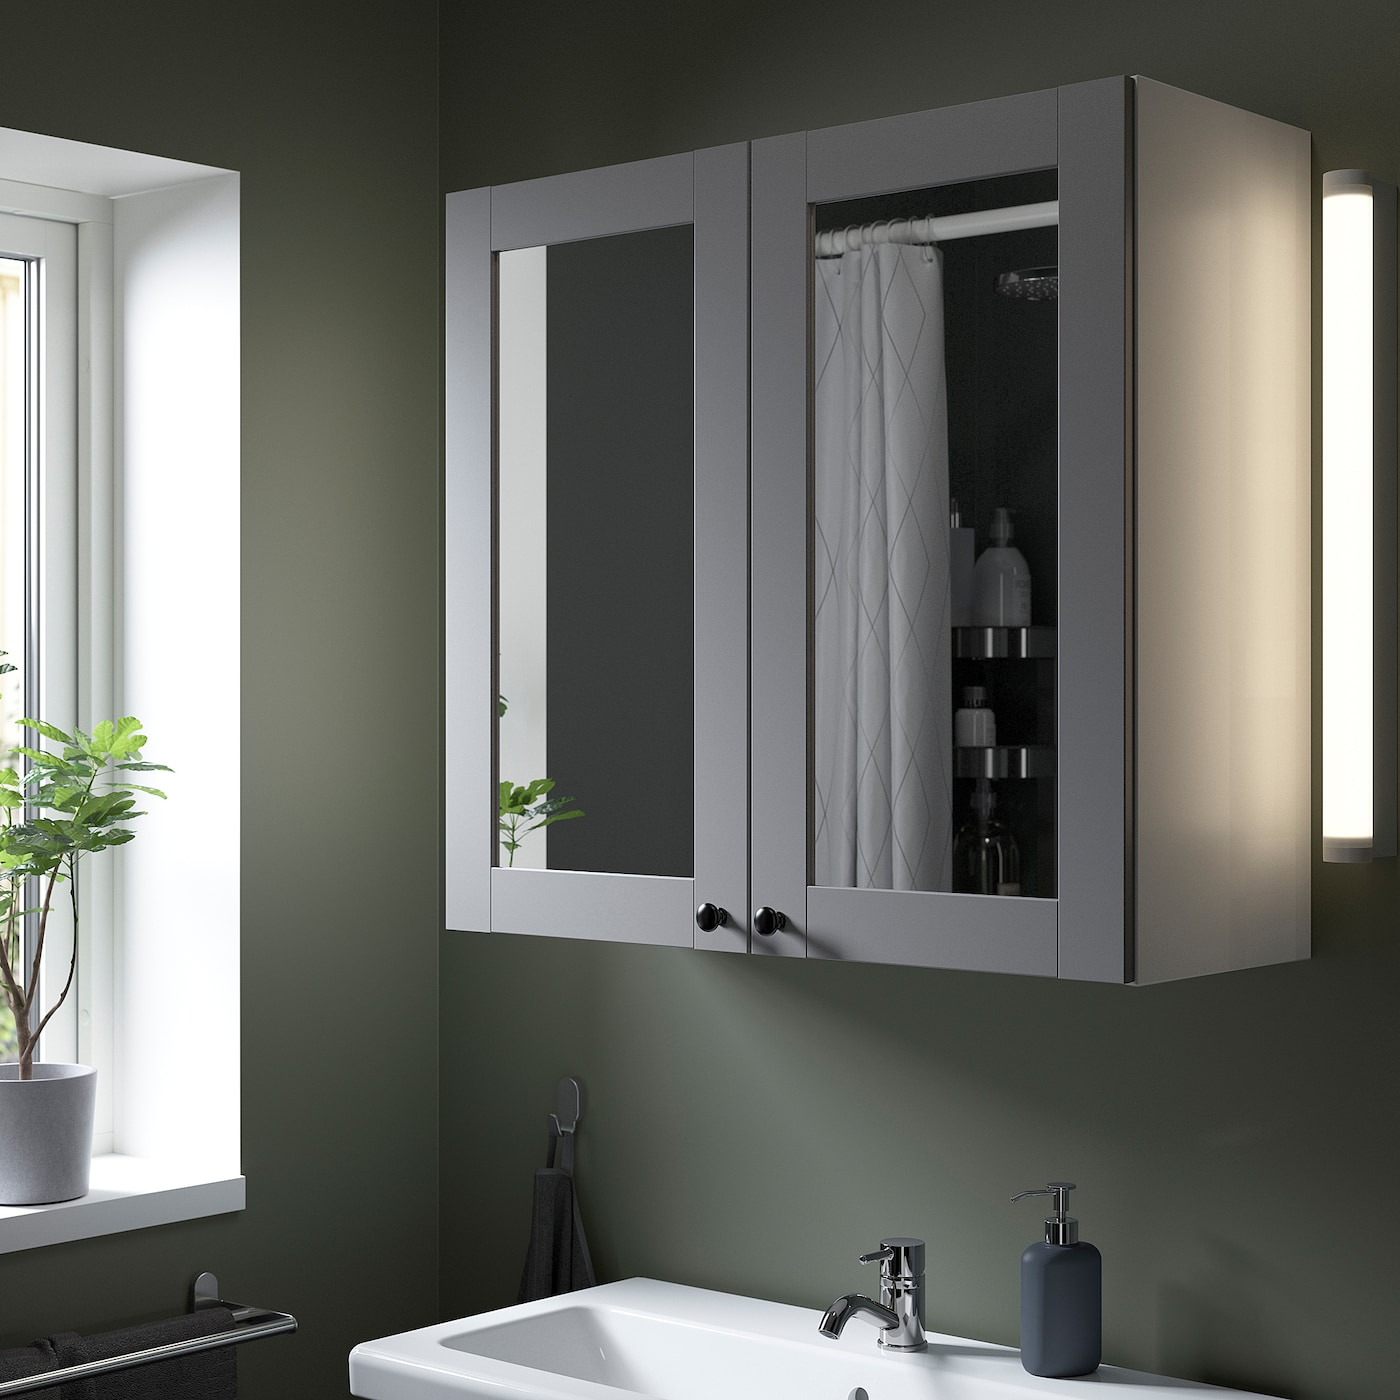 ENHET Mirror cabinet with 2 doors, white/grey frame, 80x32x75 cm